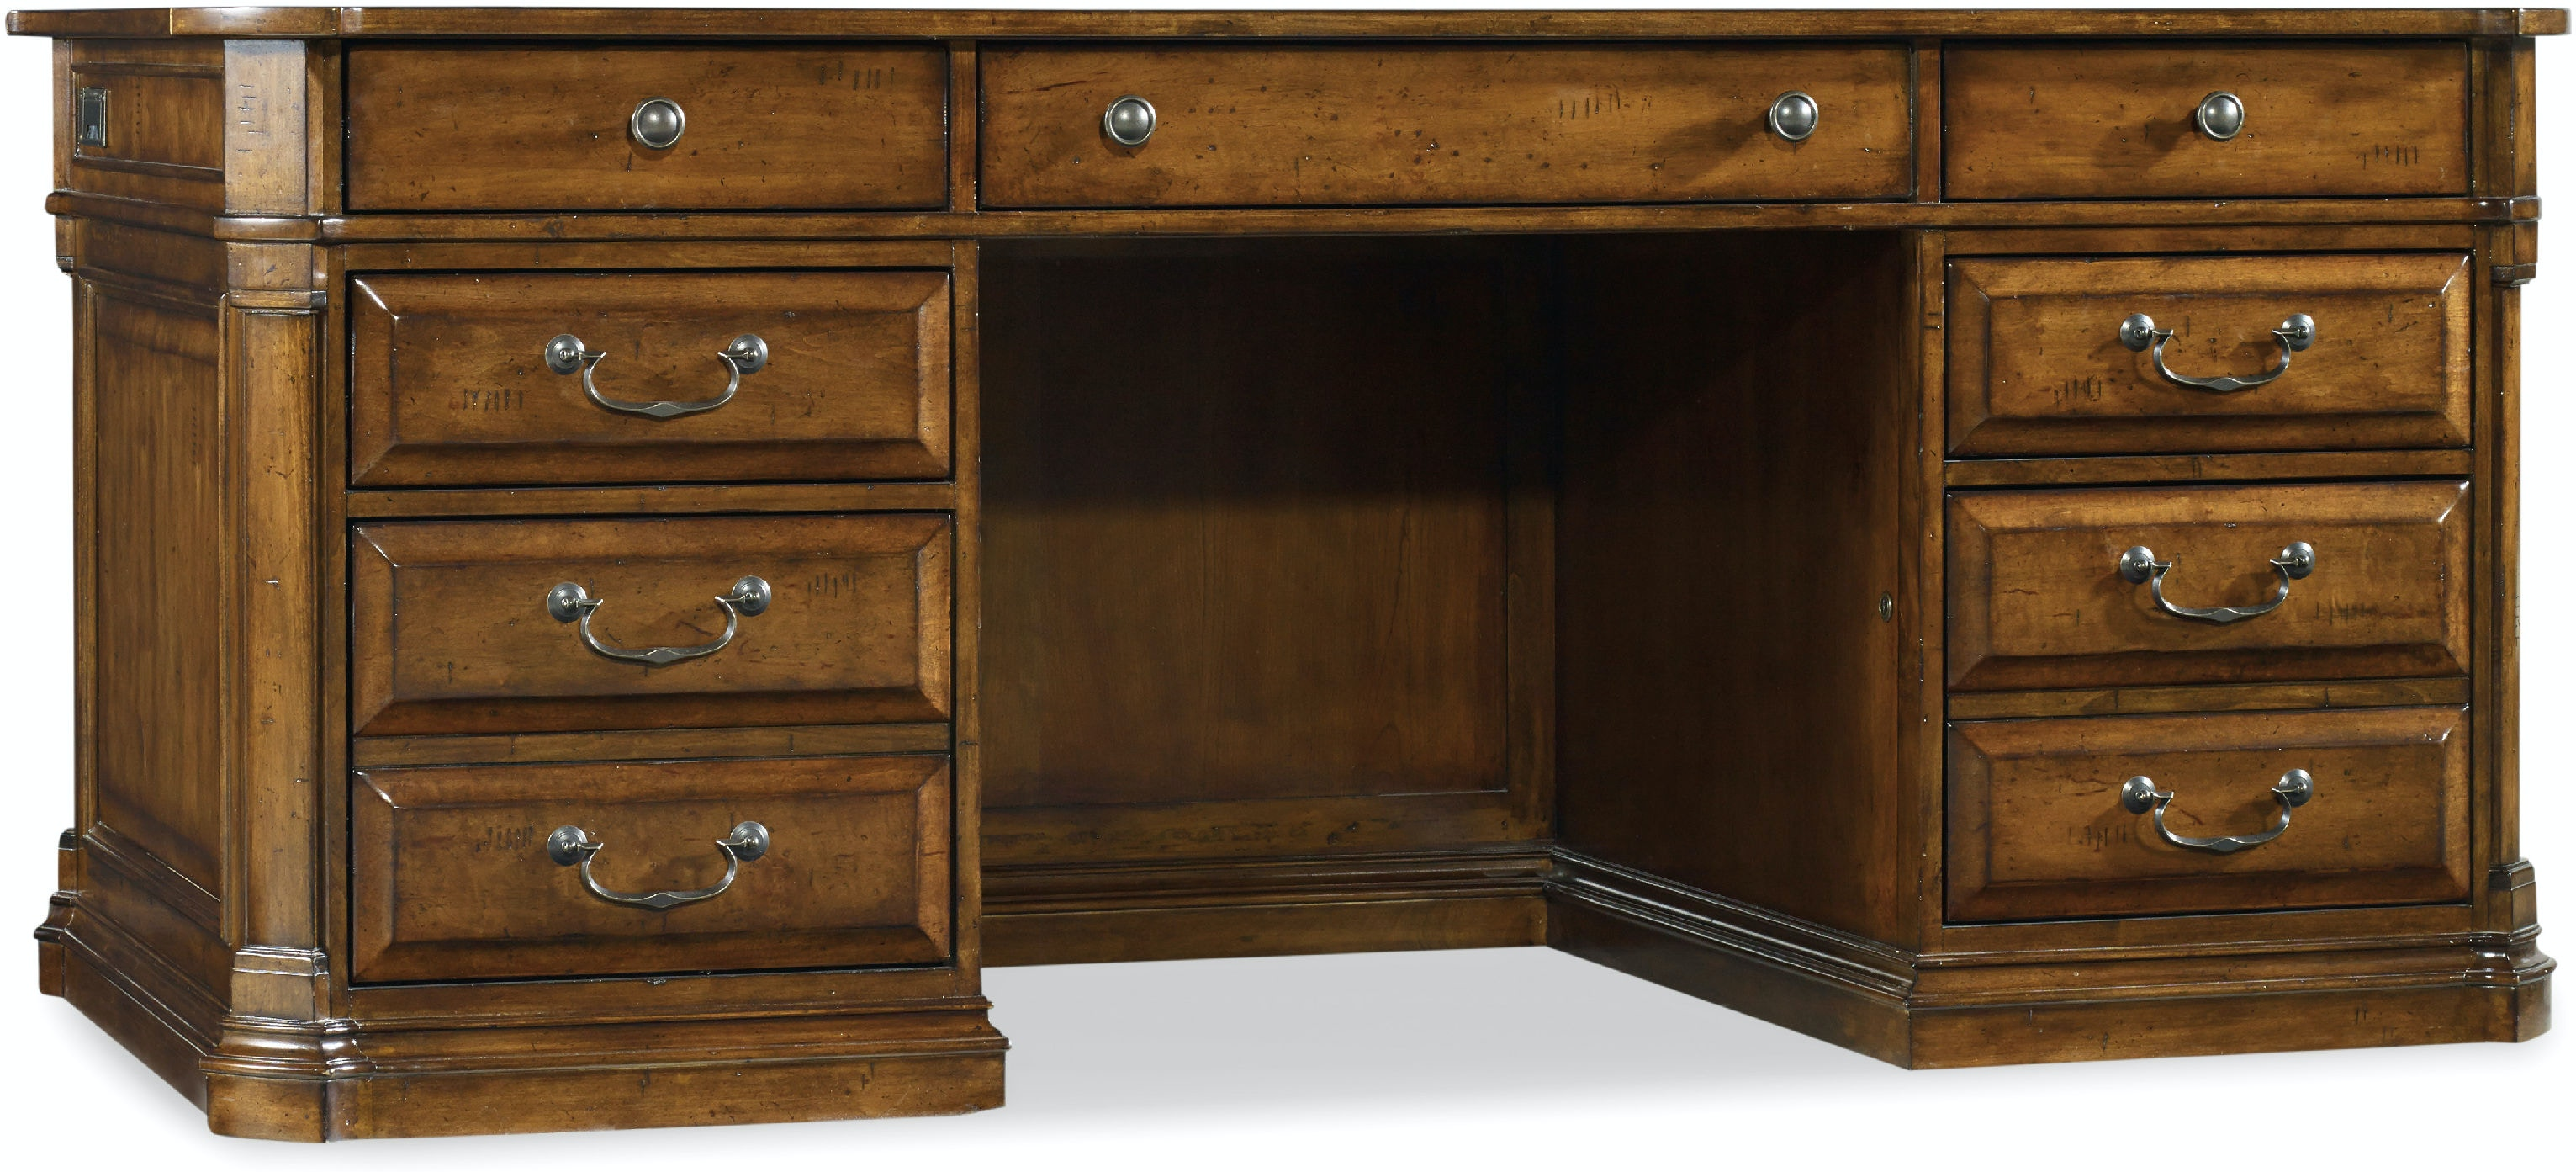 Hooker Furniture Home Office Tynecastle Executive Desk 5323 10563